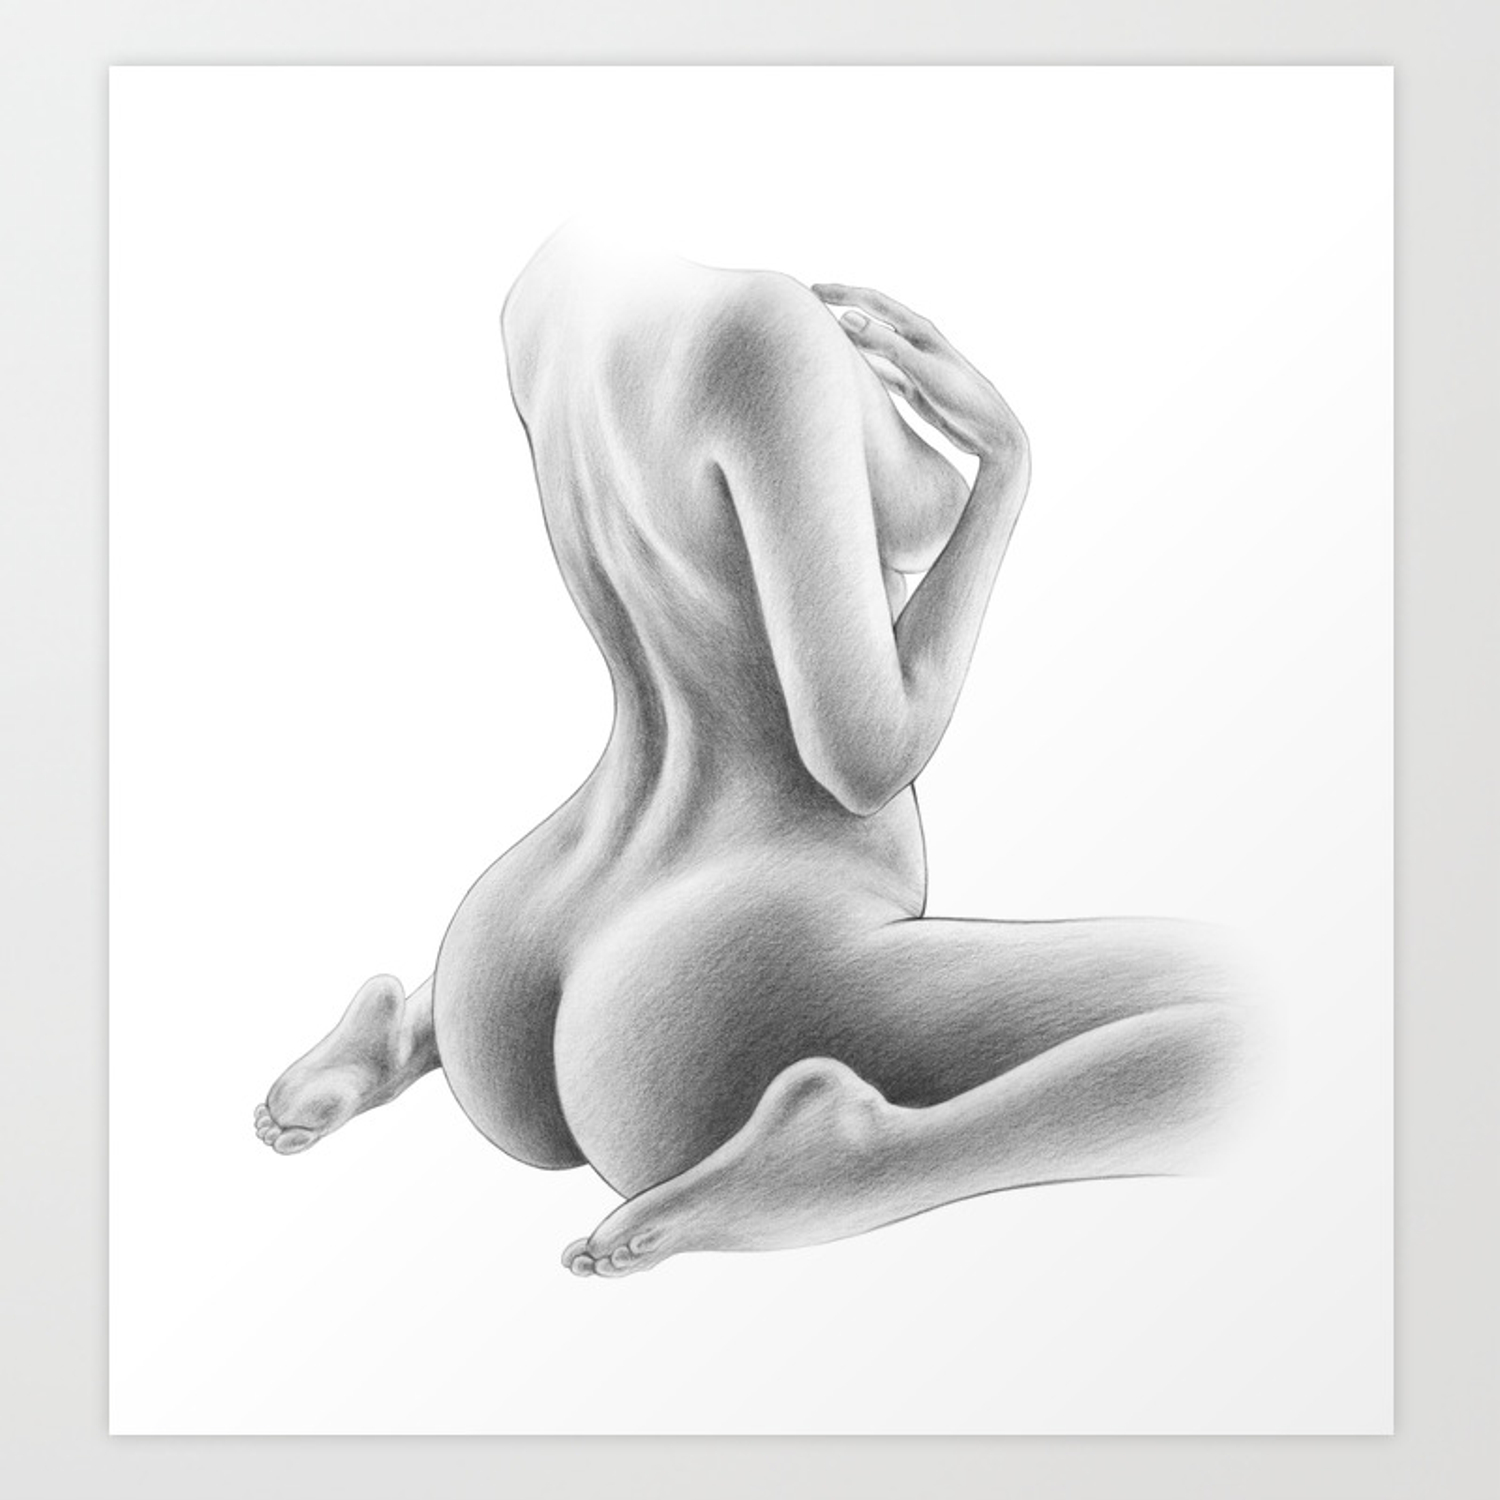 Evocative line drawings of the nude female form